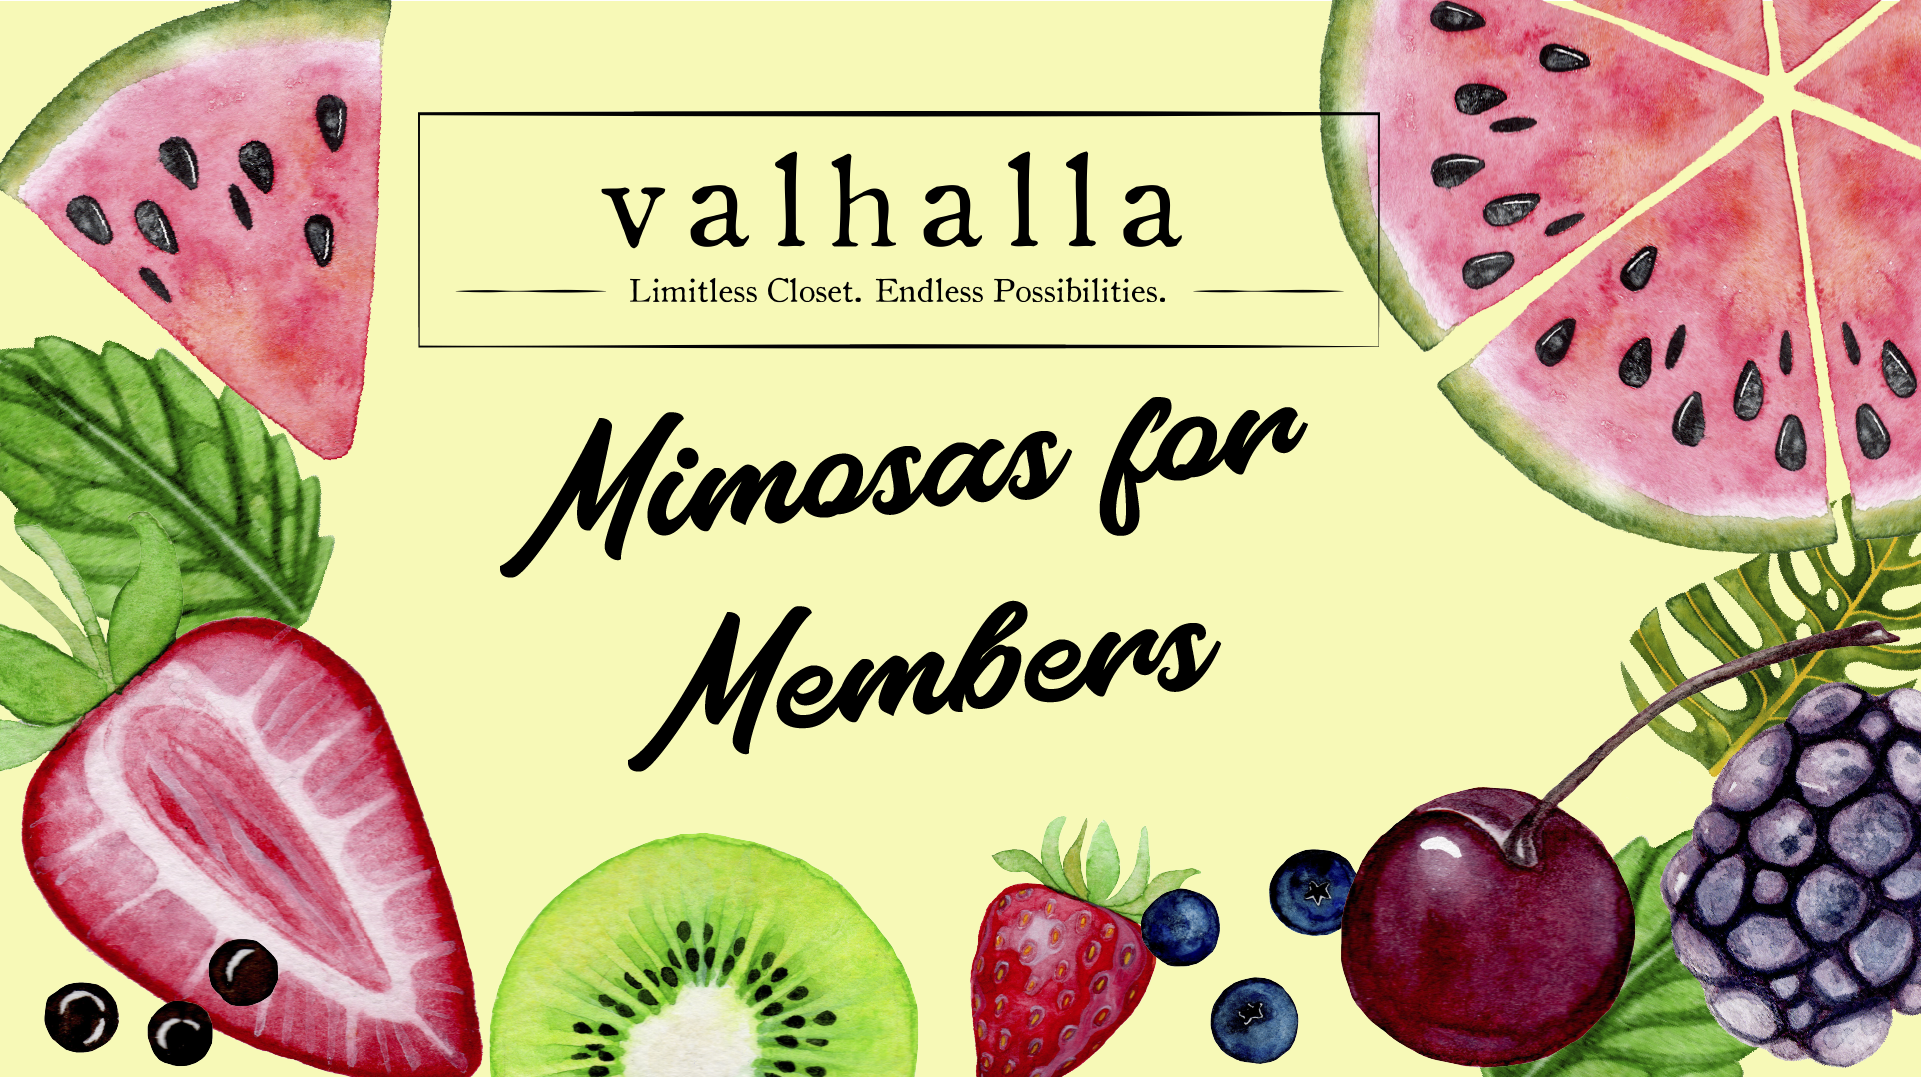 Valhalla Tampa Mimosas for Members